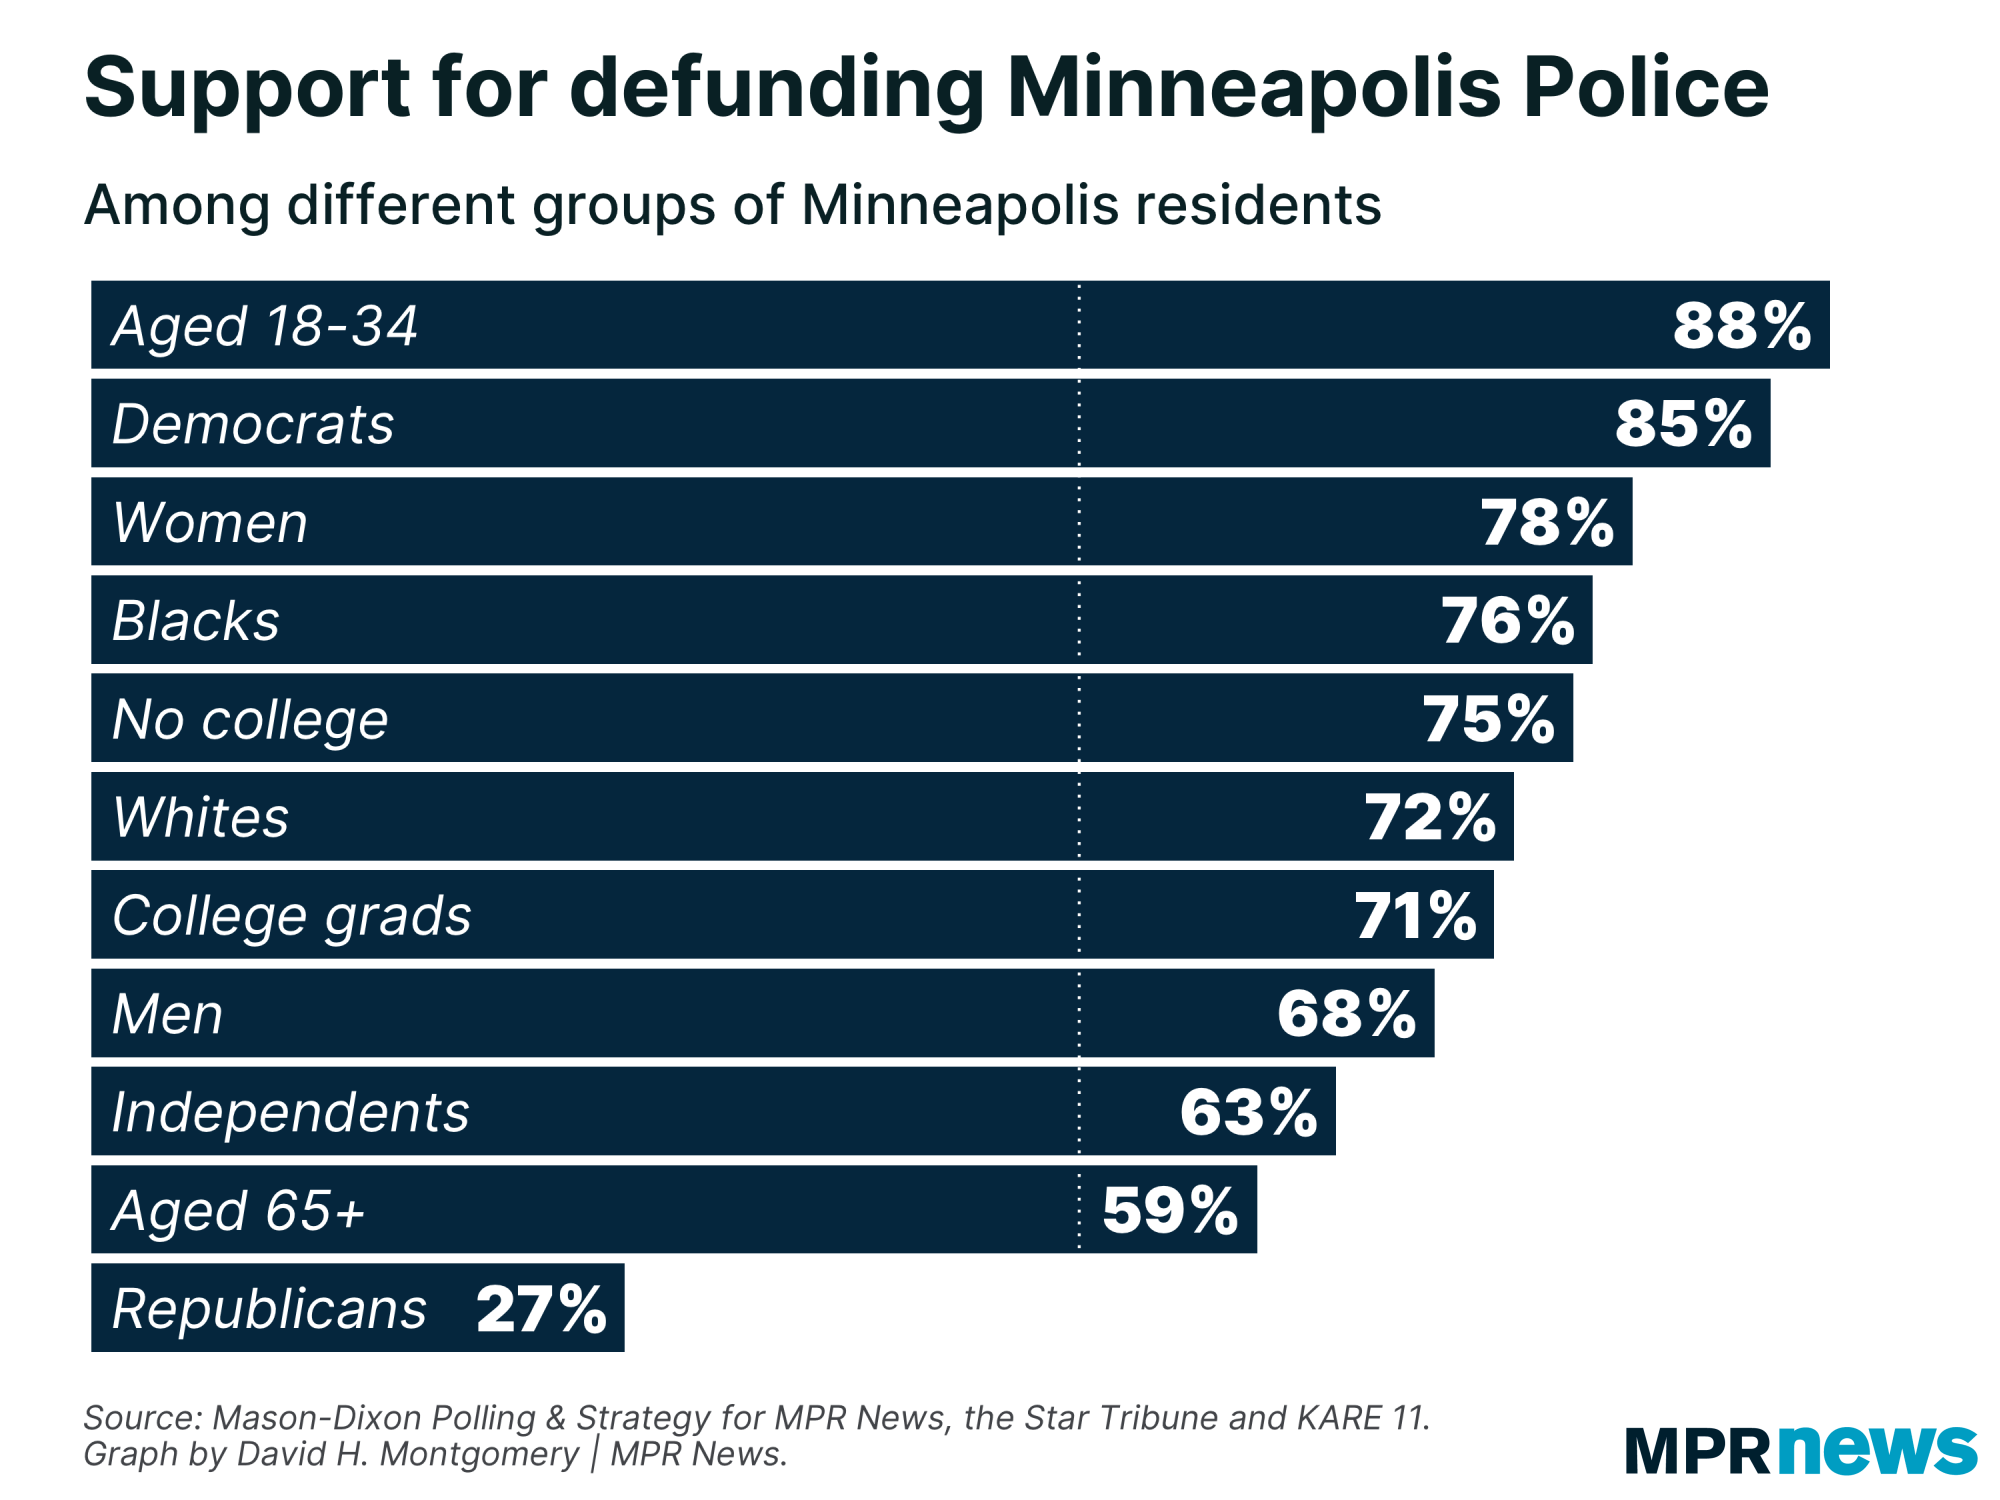 Support for defunding the police among groups of Minneapolis voters